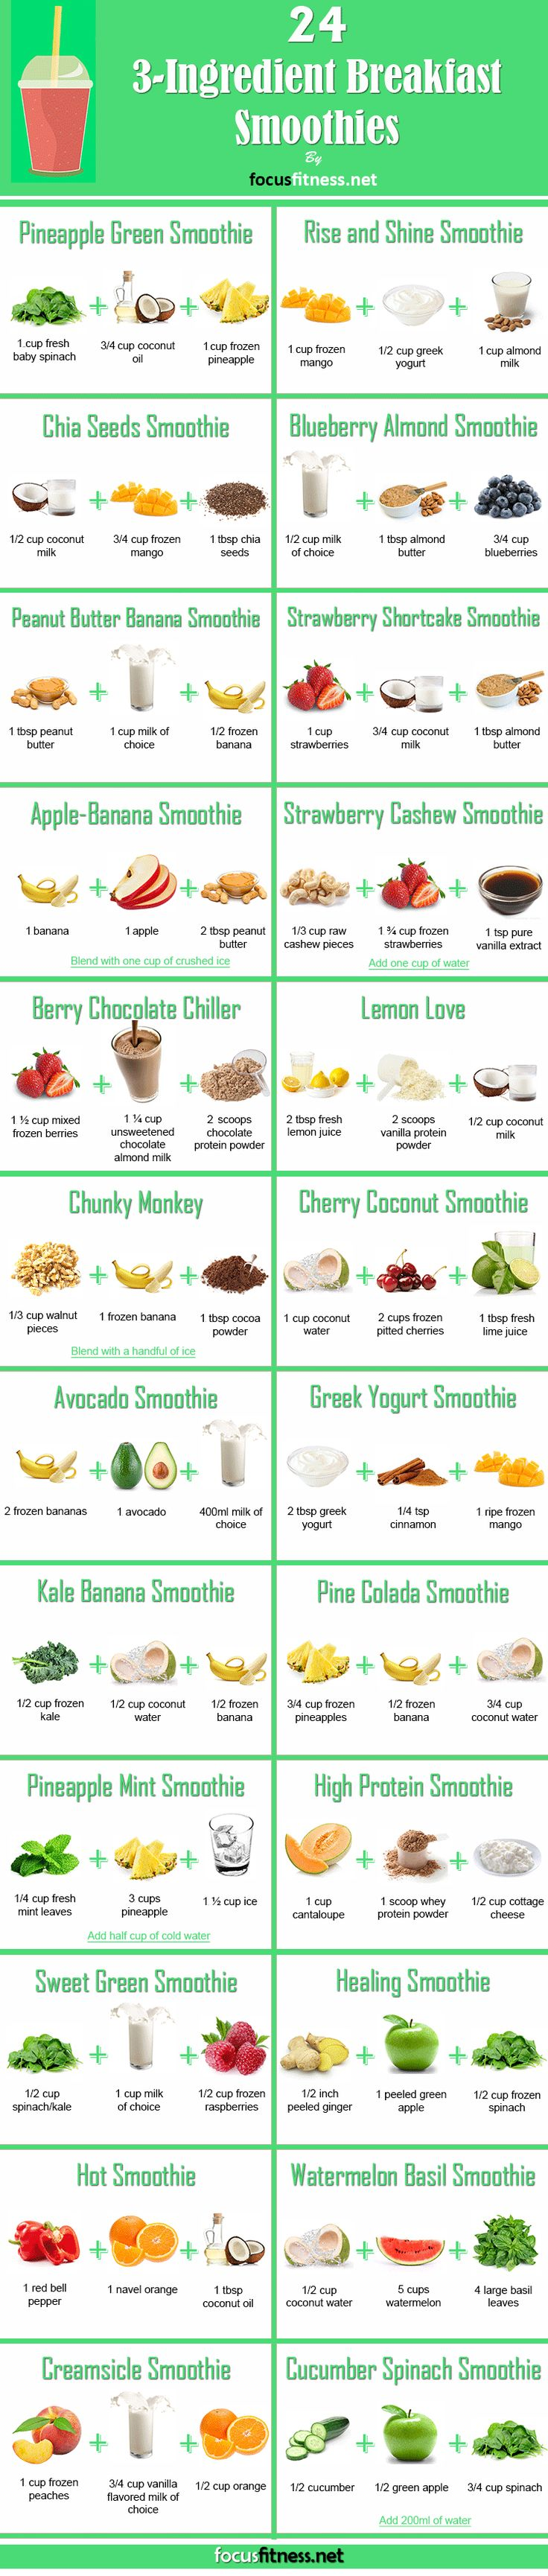 breakfast smoothies for weight loss read more http://weightlosssucesss.pw/dont-be-duped-3-diet-foods-guaranteed-to-sabotage-your-health/